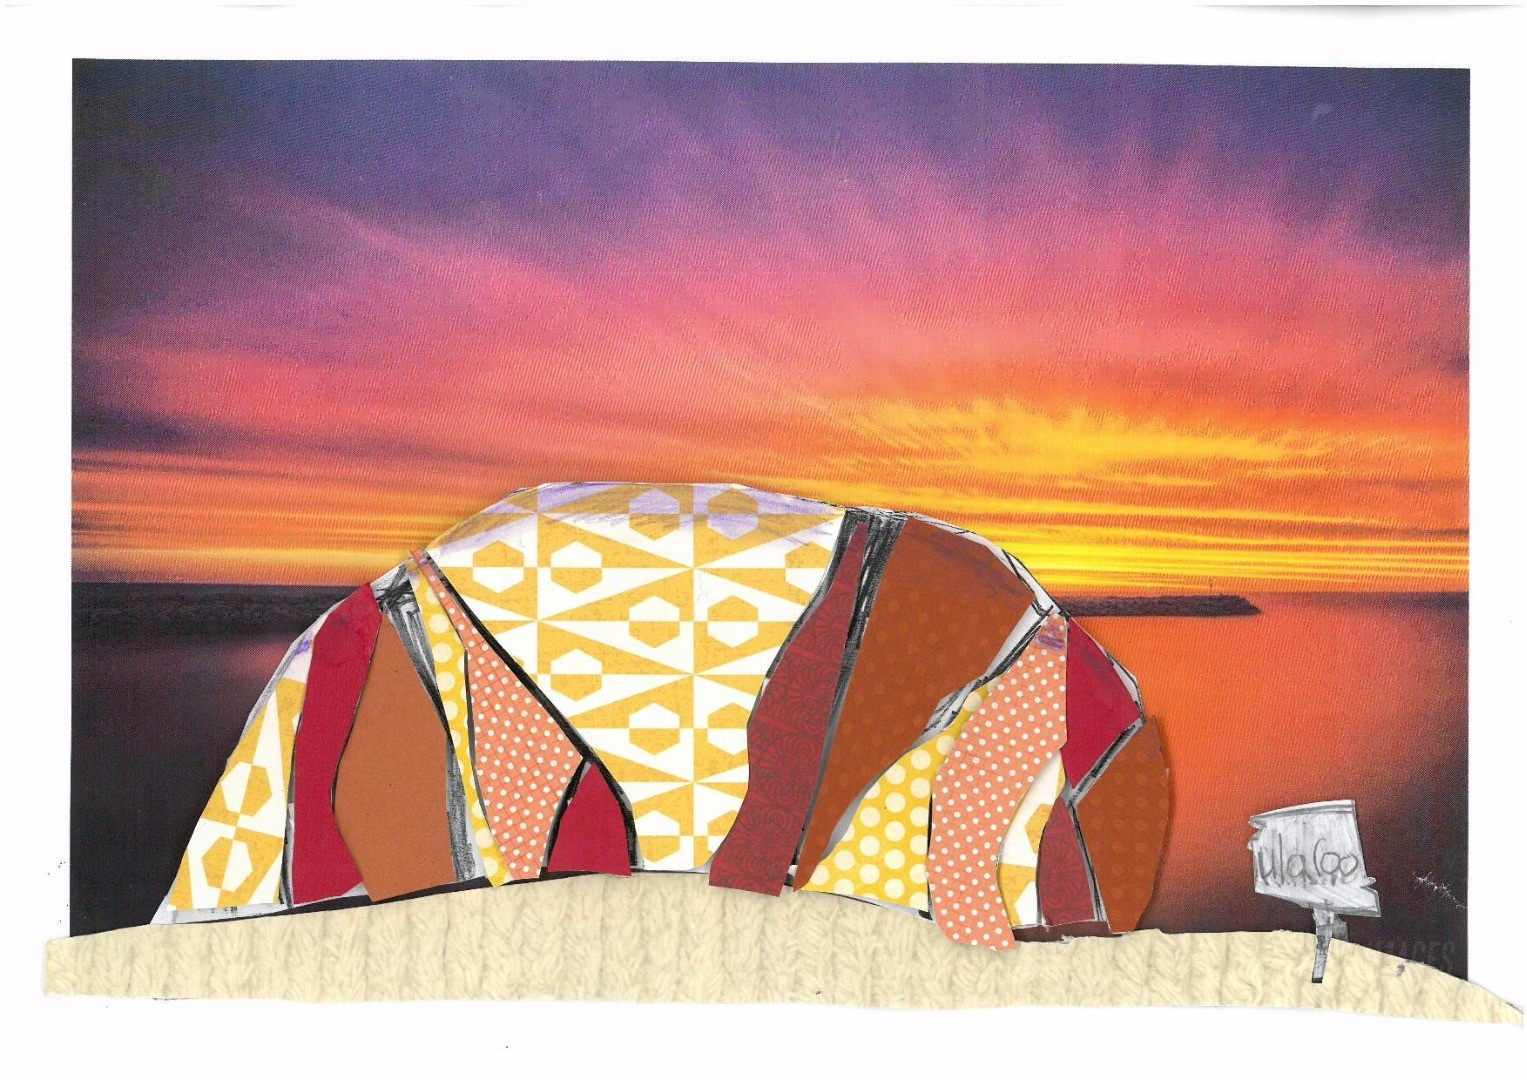 2017 Celebrate Australia Primary School Art Competition Highly Commended Section Two: Sun Hidden Behind Uluru by Alice Falconer